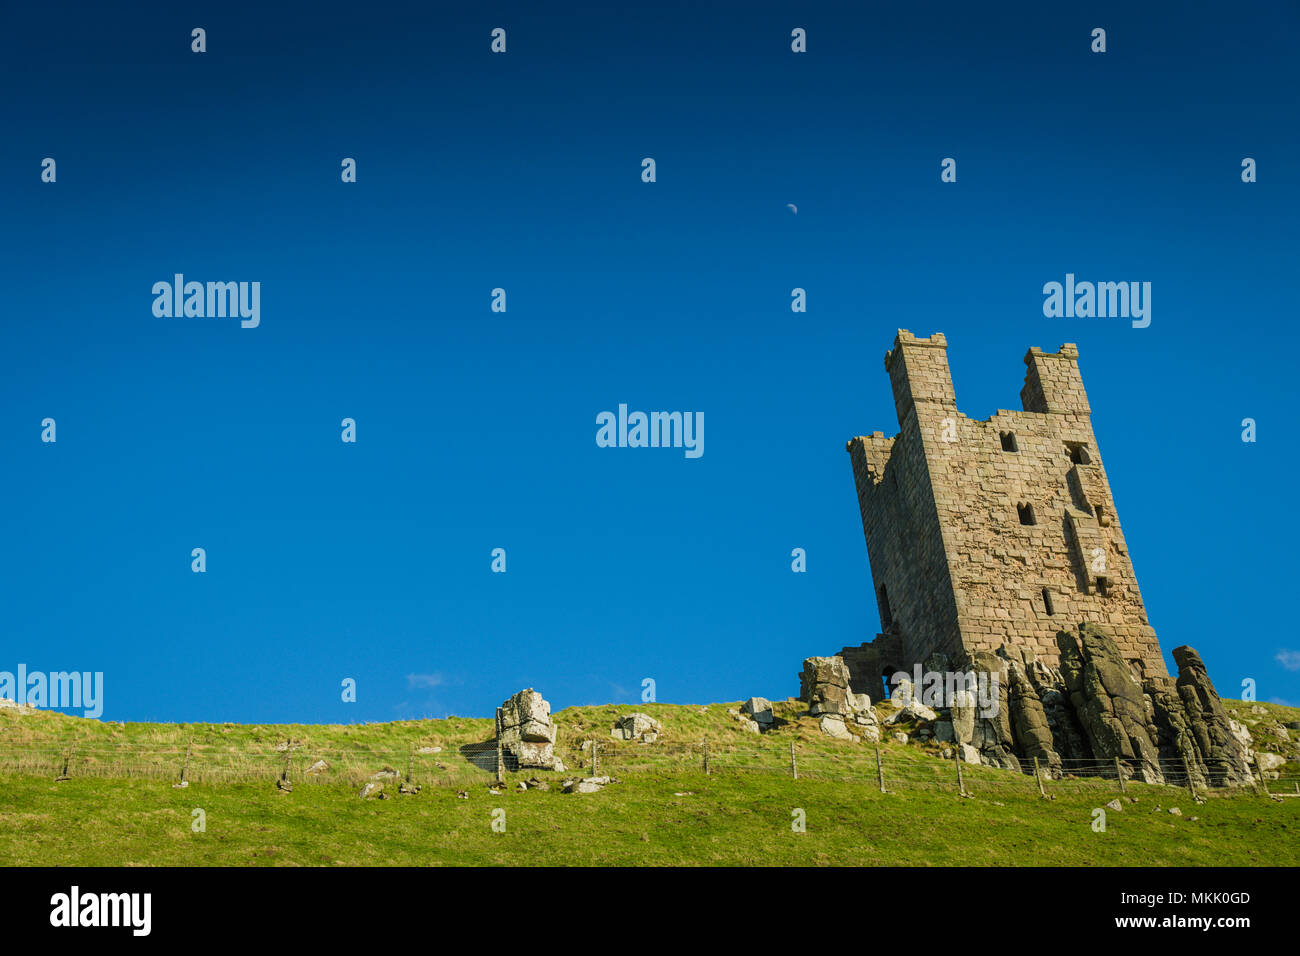 Lilburn Tower, Dunstanburgh Castle, Northumberland, UK. - Stock Image